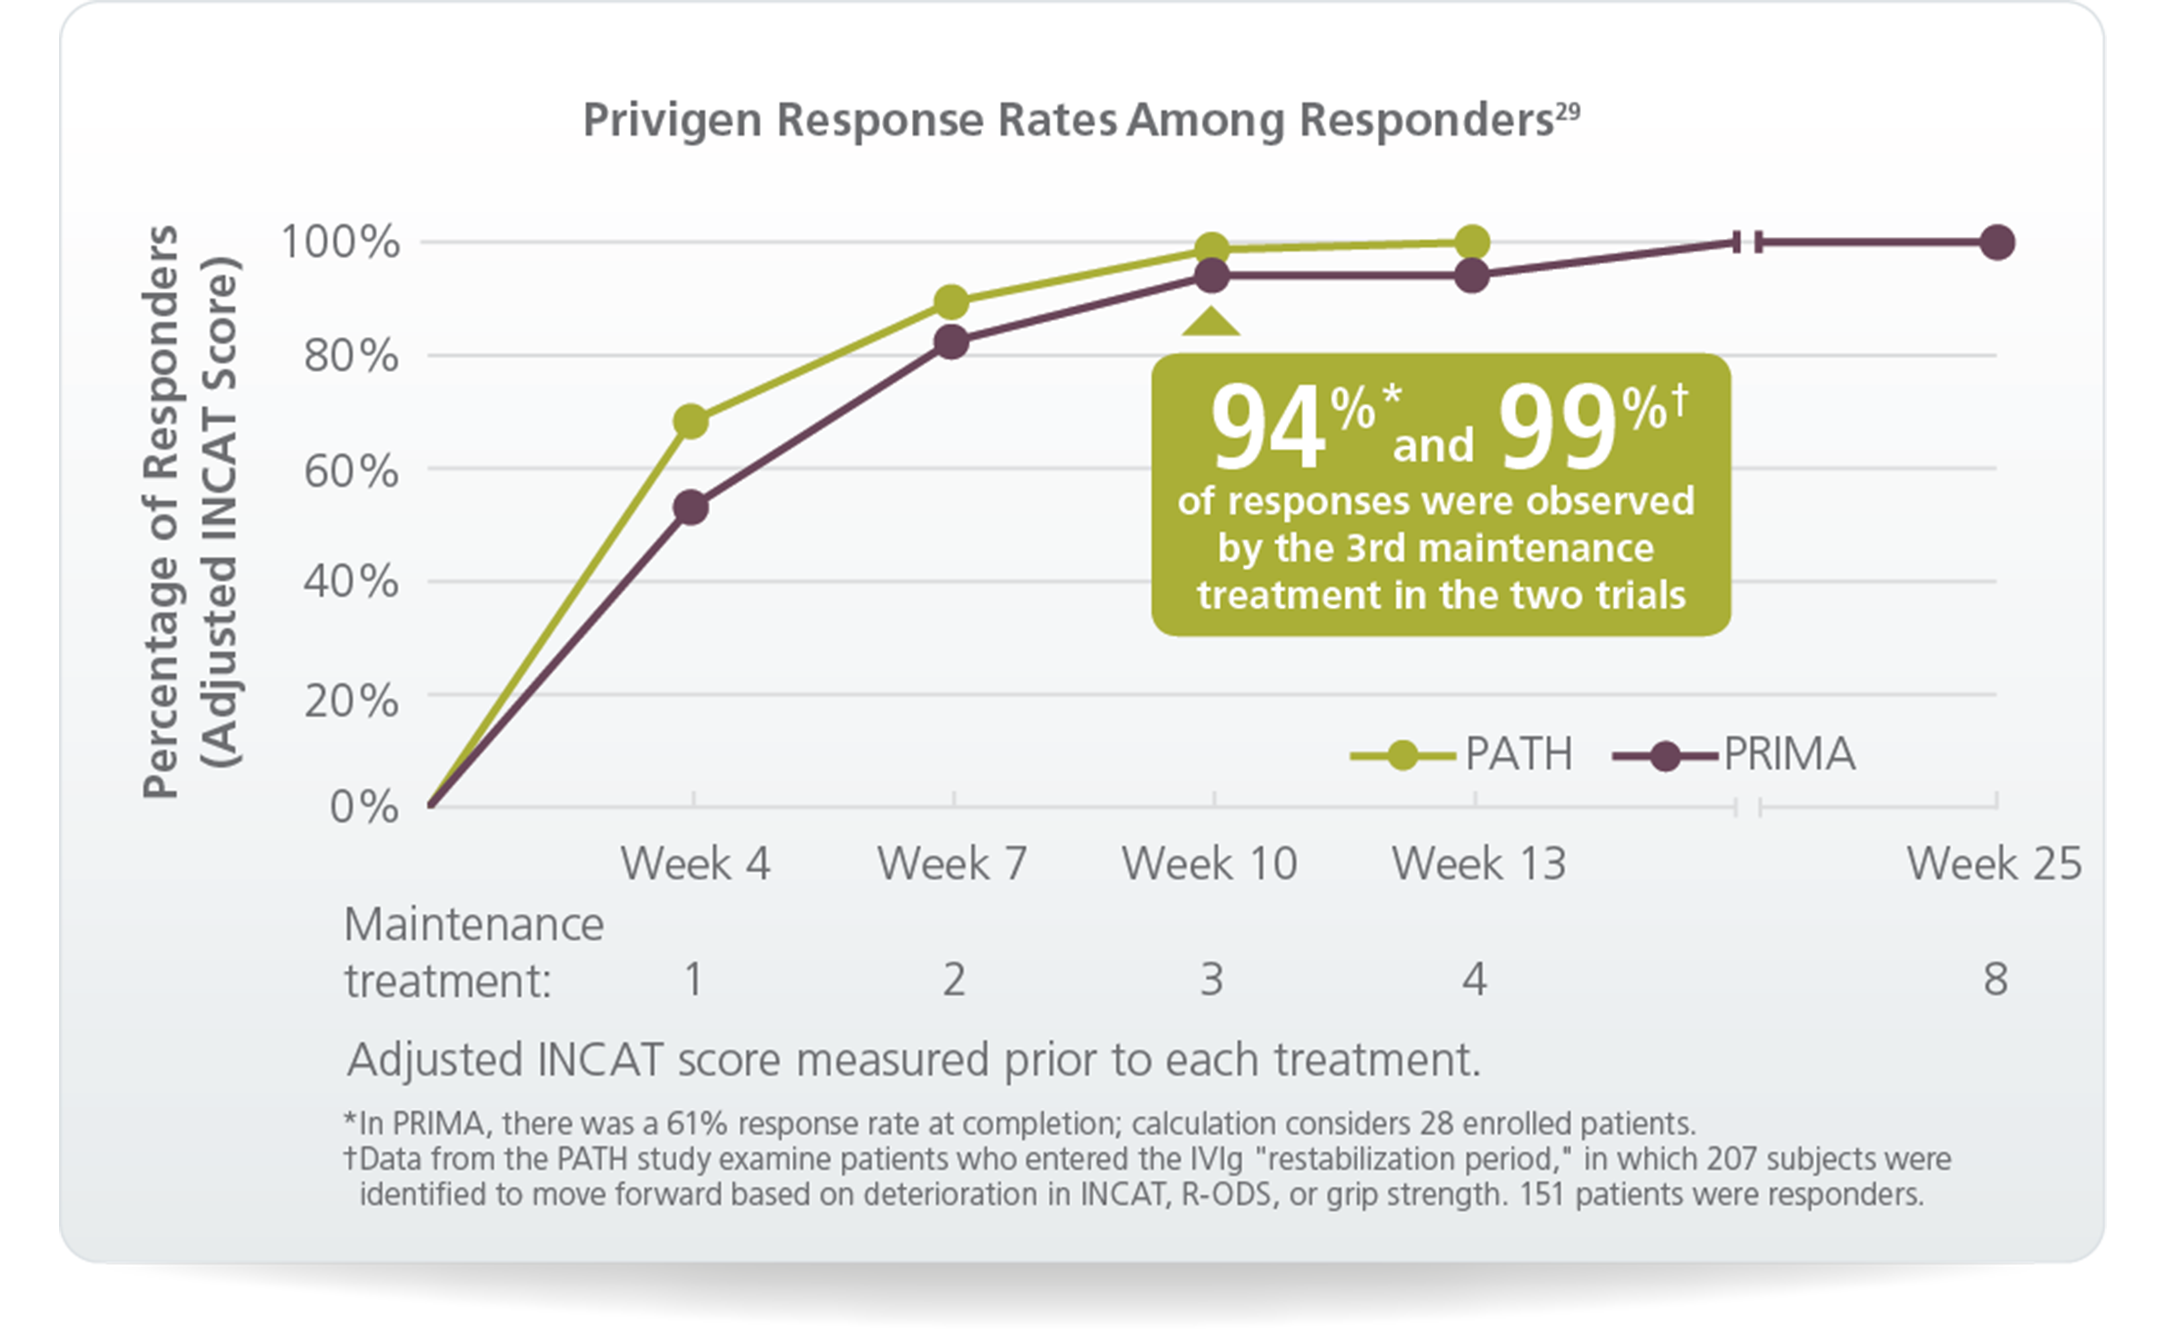 Privigen response rates among responders graph